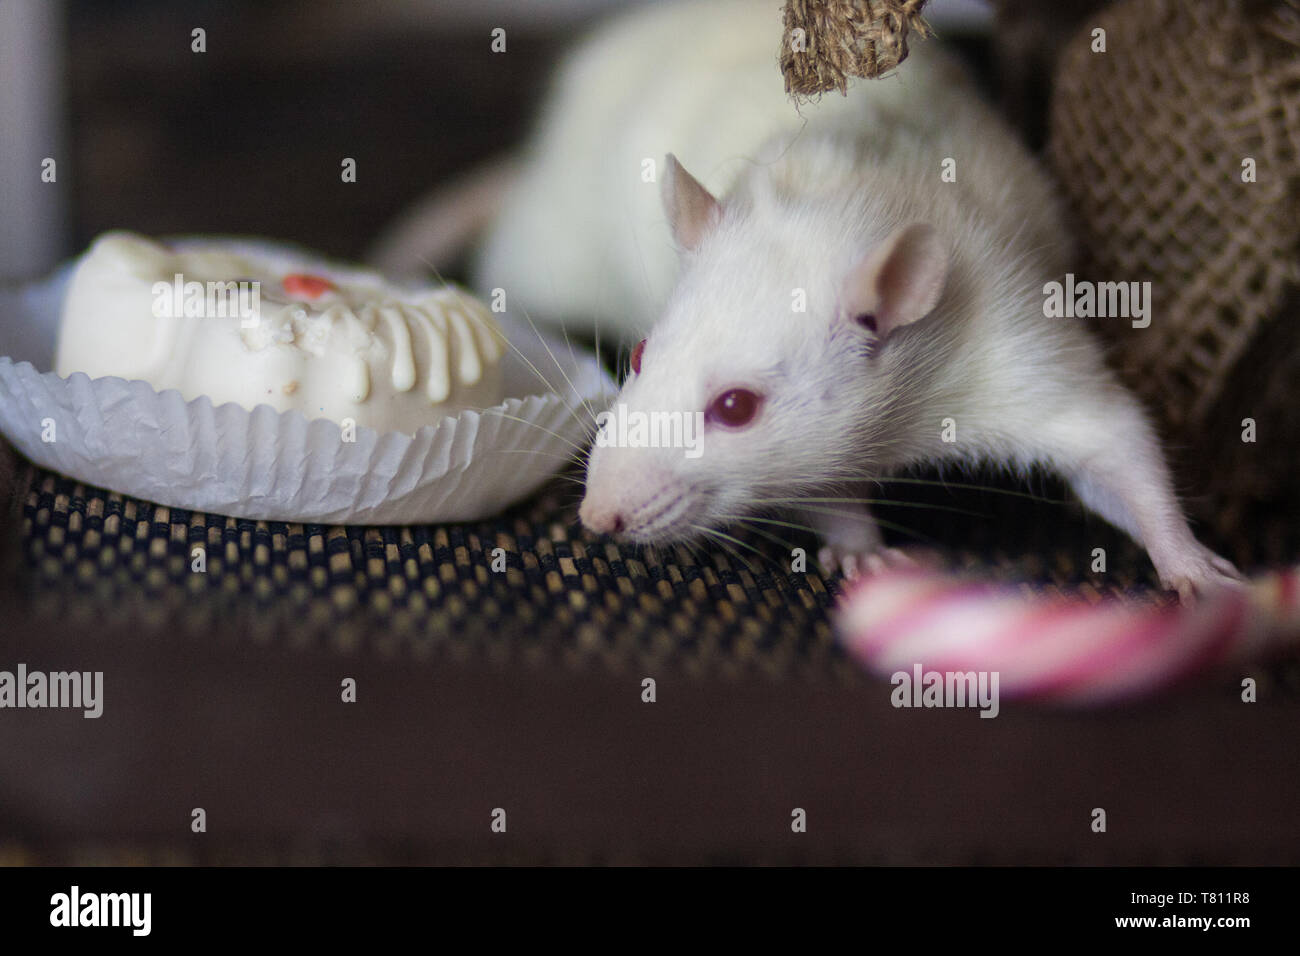 Obesity concept. Mouse and sweets. White rat. White mouse. The rat is eating. Closeup mouse. - Stock Image